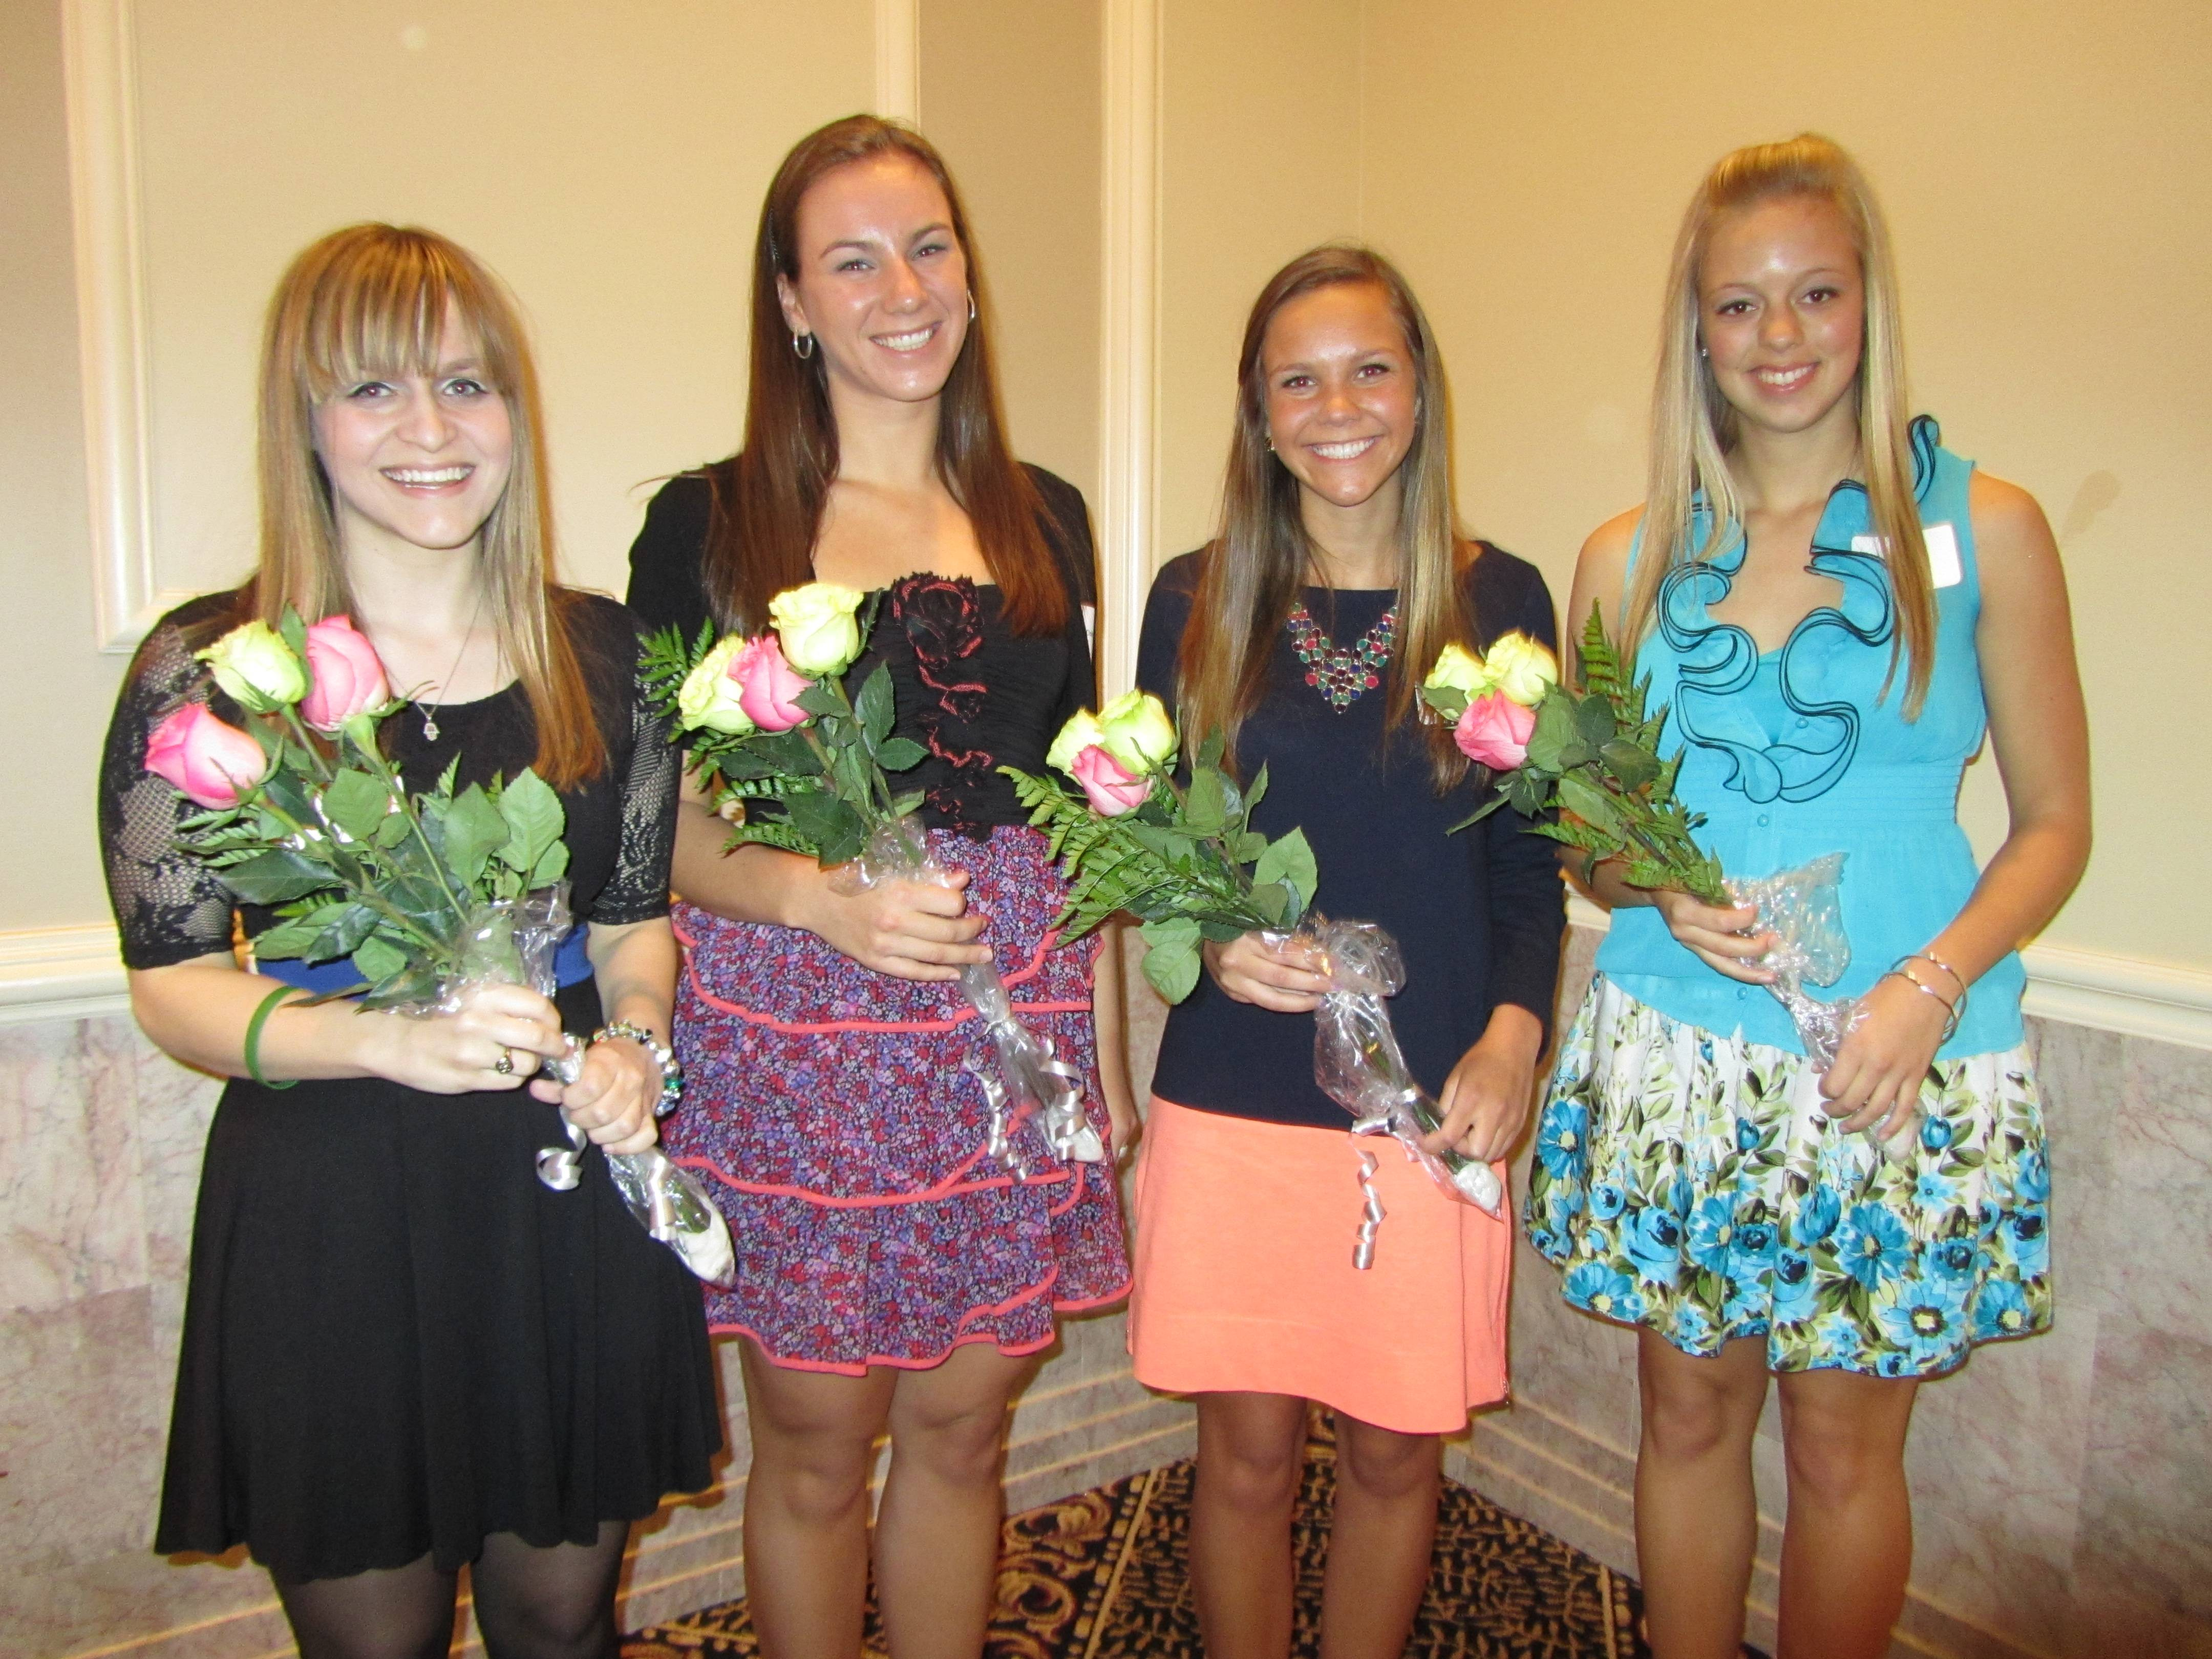 The Northwest Suburban Alumnae Panhellenic scholarship winners pictured are (l-r): Alison Preissing, Claire Eichmann, Caroline Thompson and Olivia Pesce. Not pictured is Melissa Engel.  Photo taken at the scholarship banquet on April 29, 2013 at the Cotillion in Palatine.